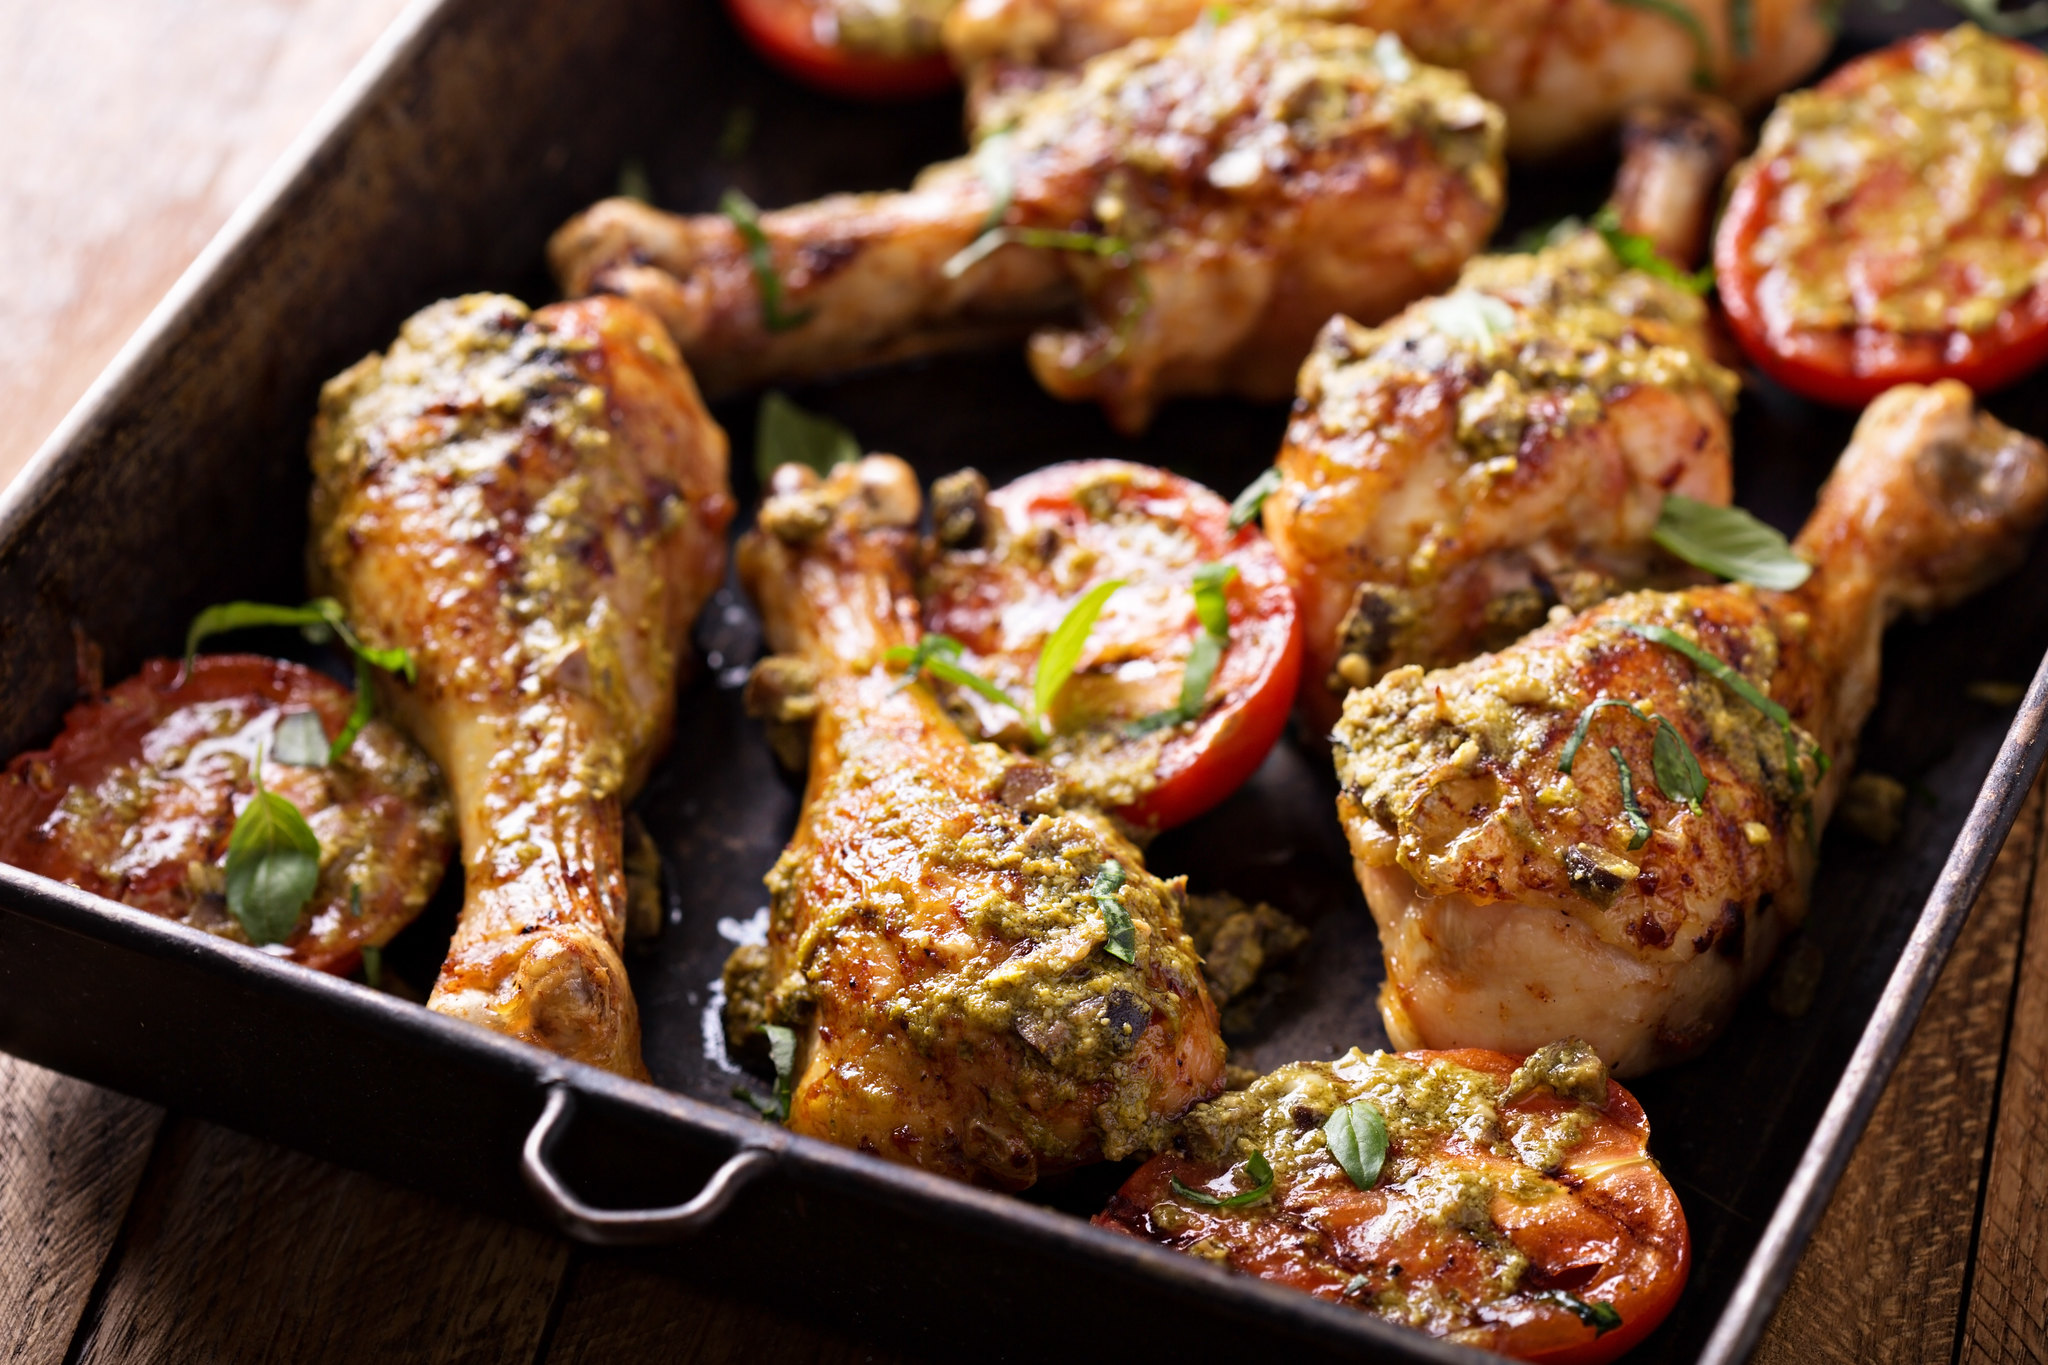 Baked Chicken & Tomatoes with Pesto